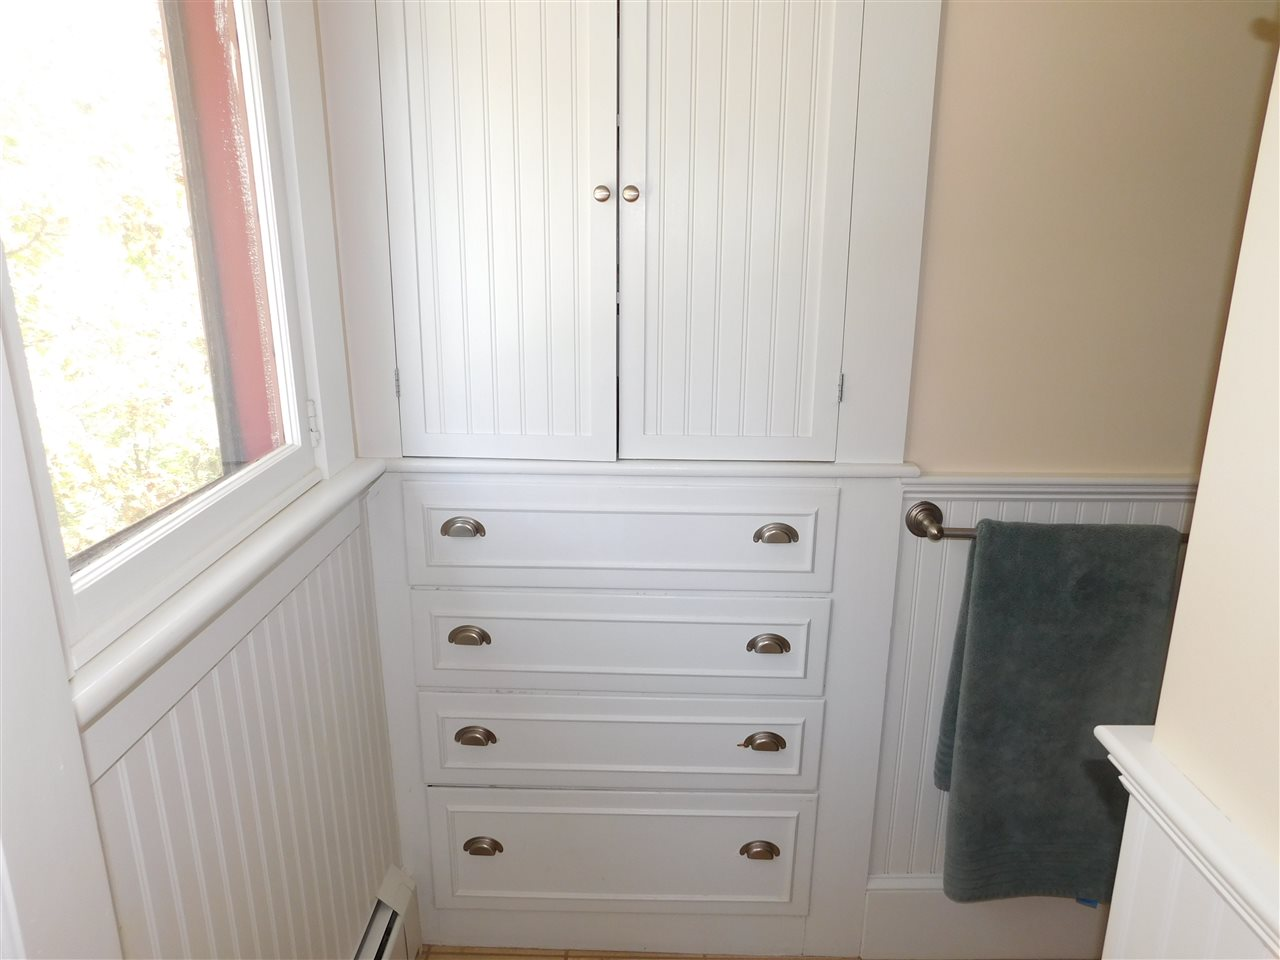 Built In Drawers in Master Bathroom! 12114492